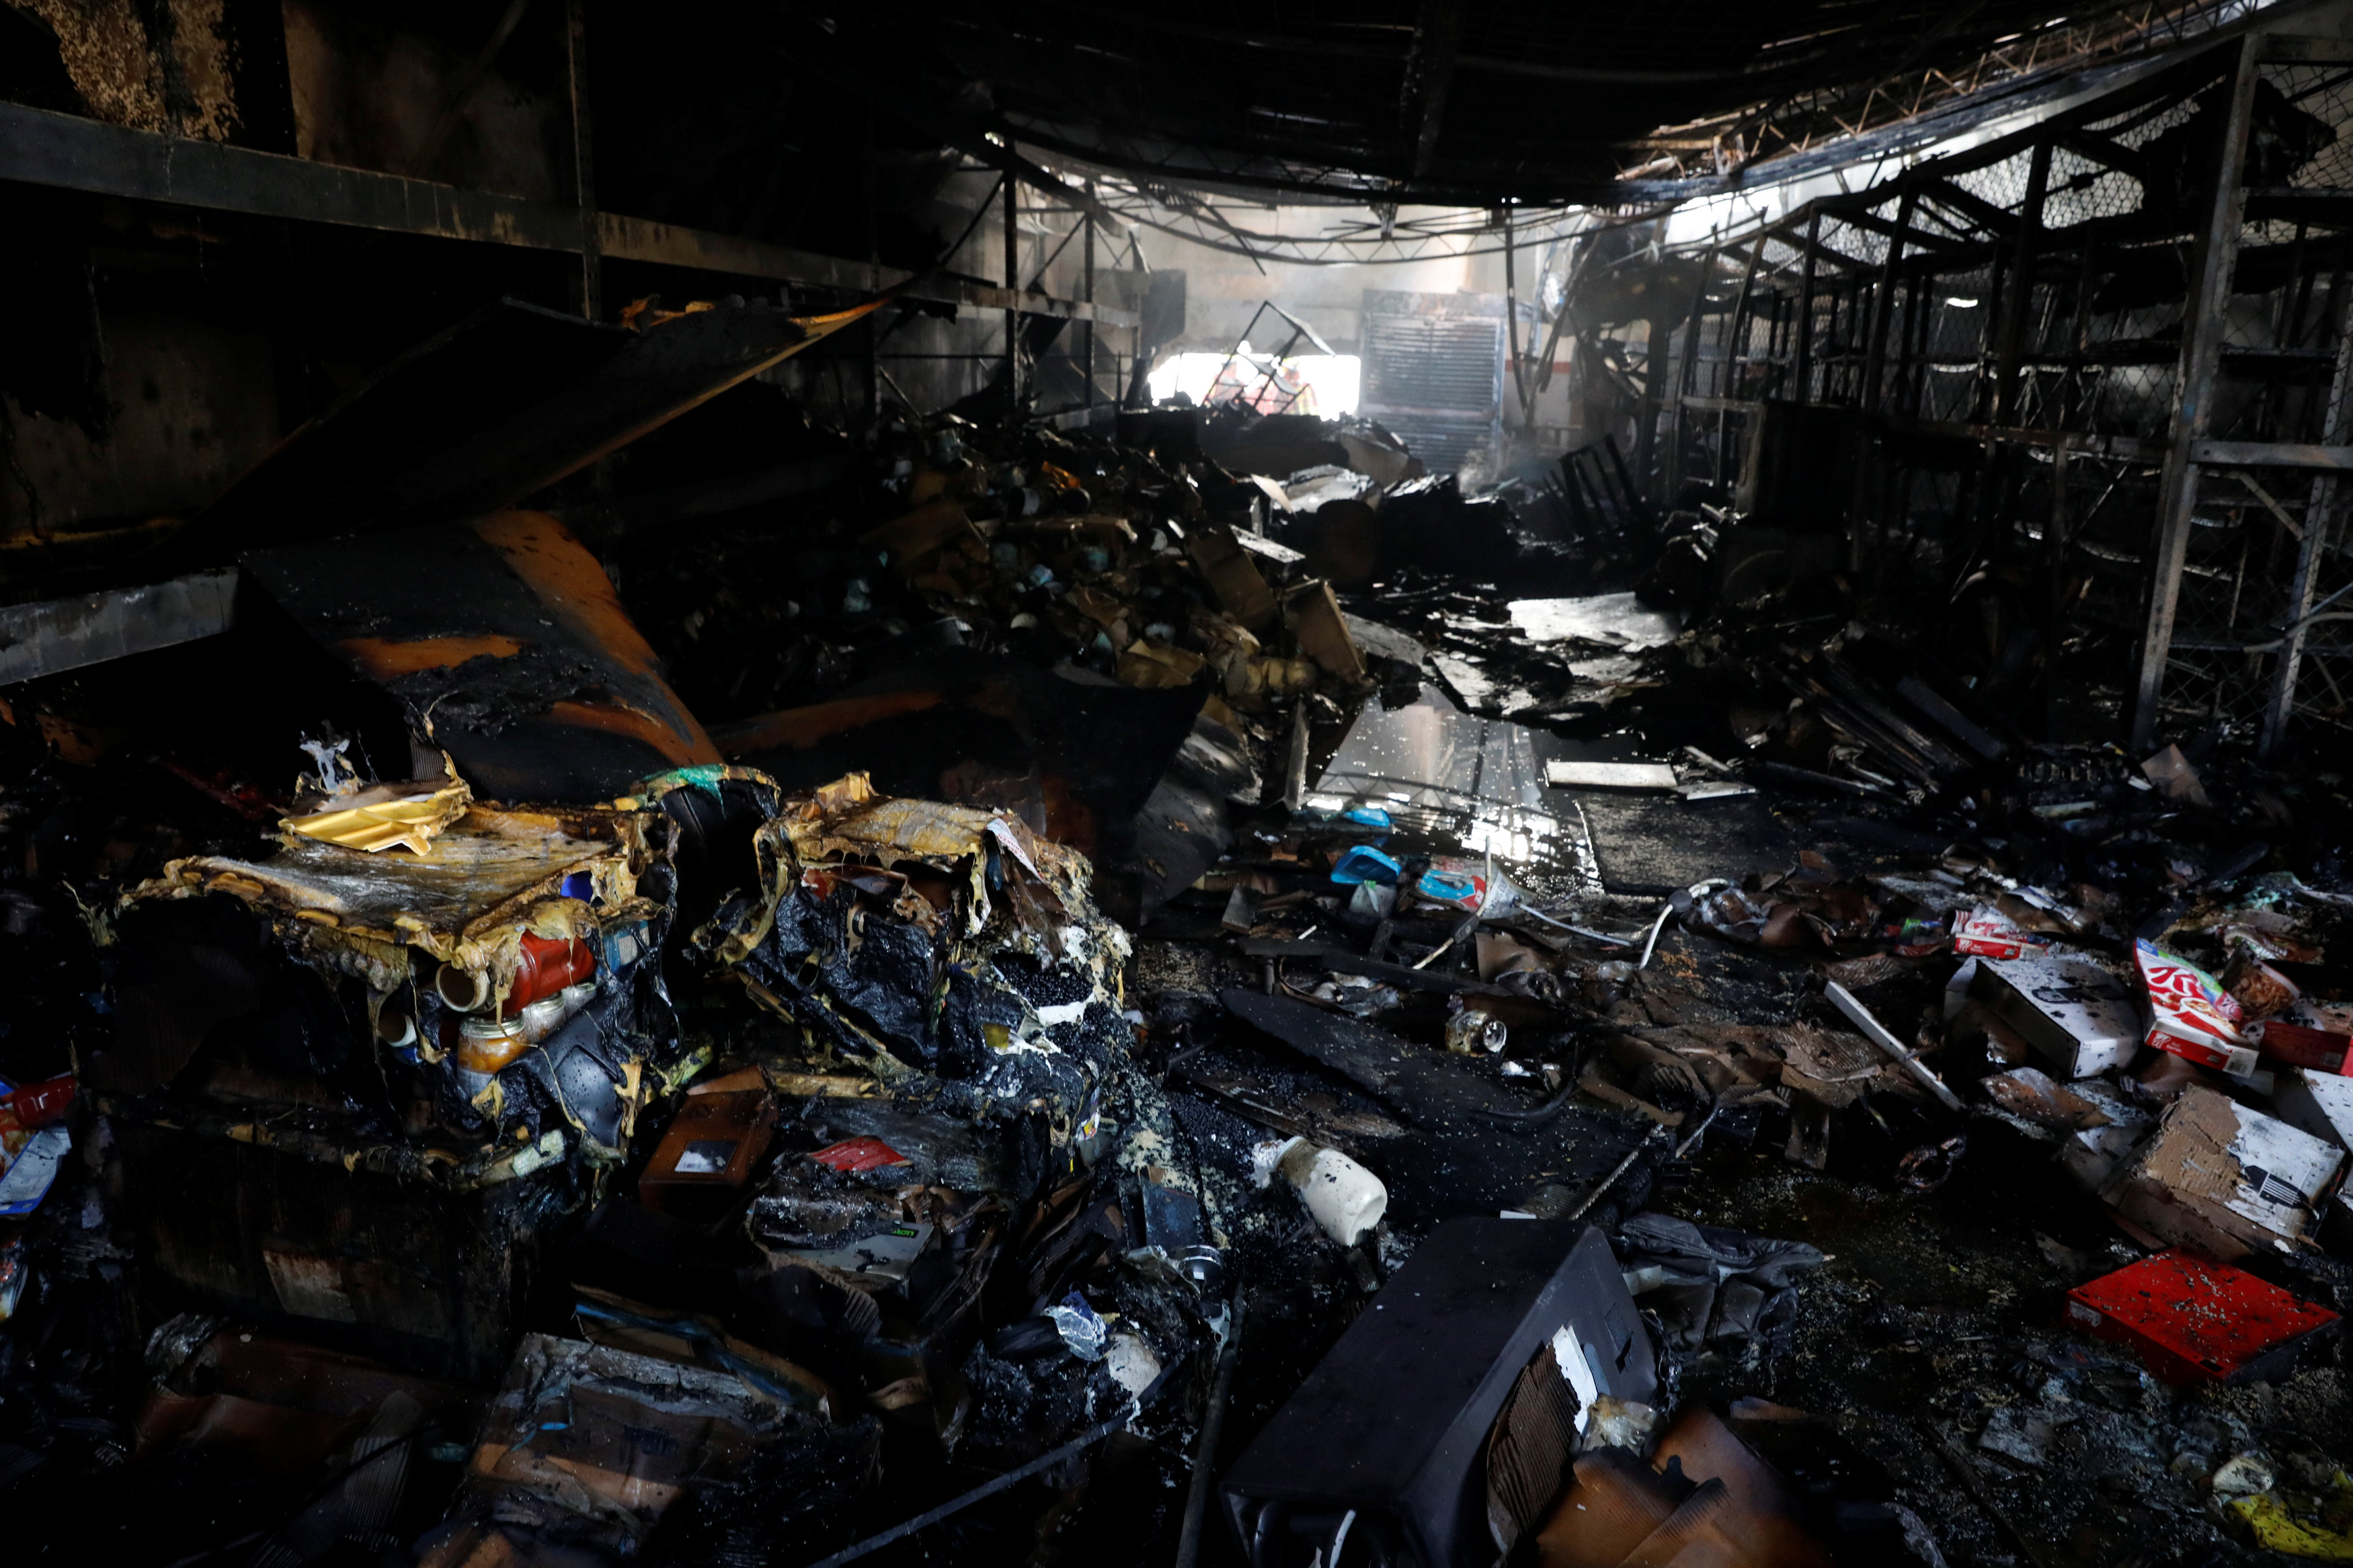 REFILE -CLARIFYING CAPTION  Burned debris are seen in a warehouse in the building where the offices of Venezuelan opposition leader and Governor of Miranda state Henrique Capriles are located, in Caracas, Venezuela, April 8, 2017. REUTERS/Carlos Garcia Rawlins